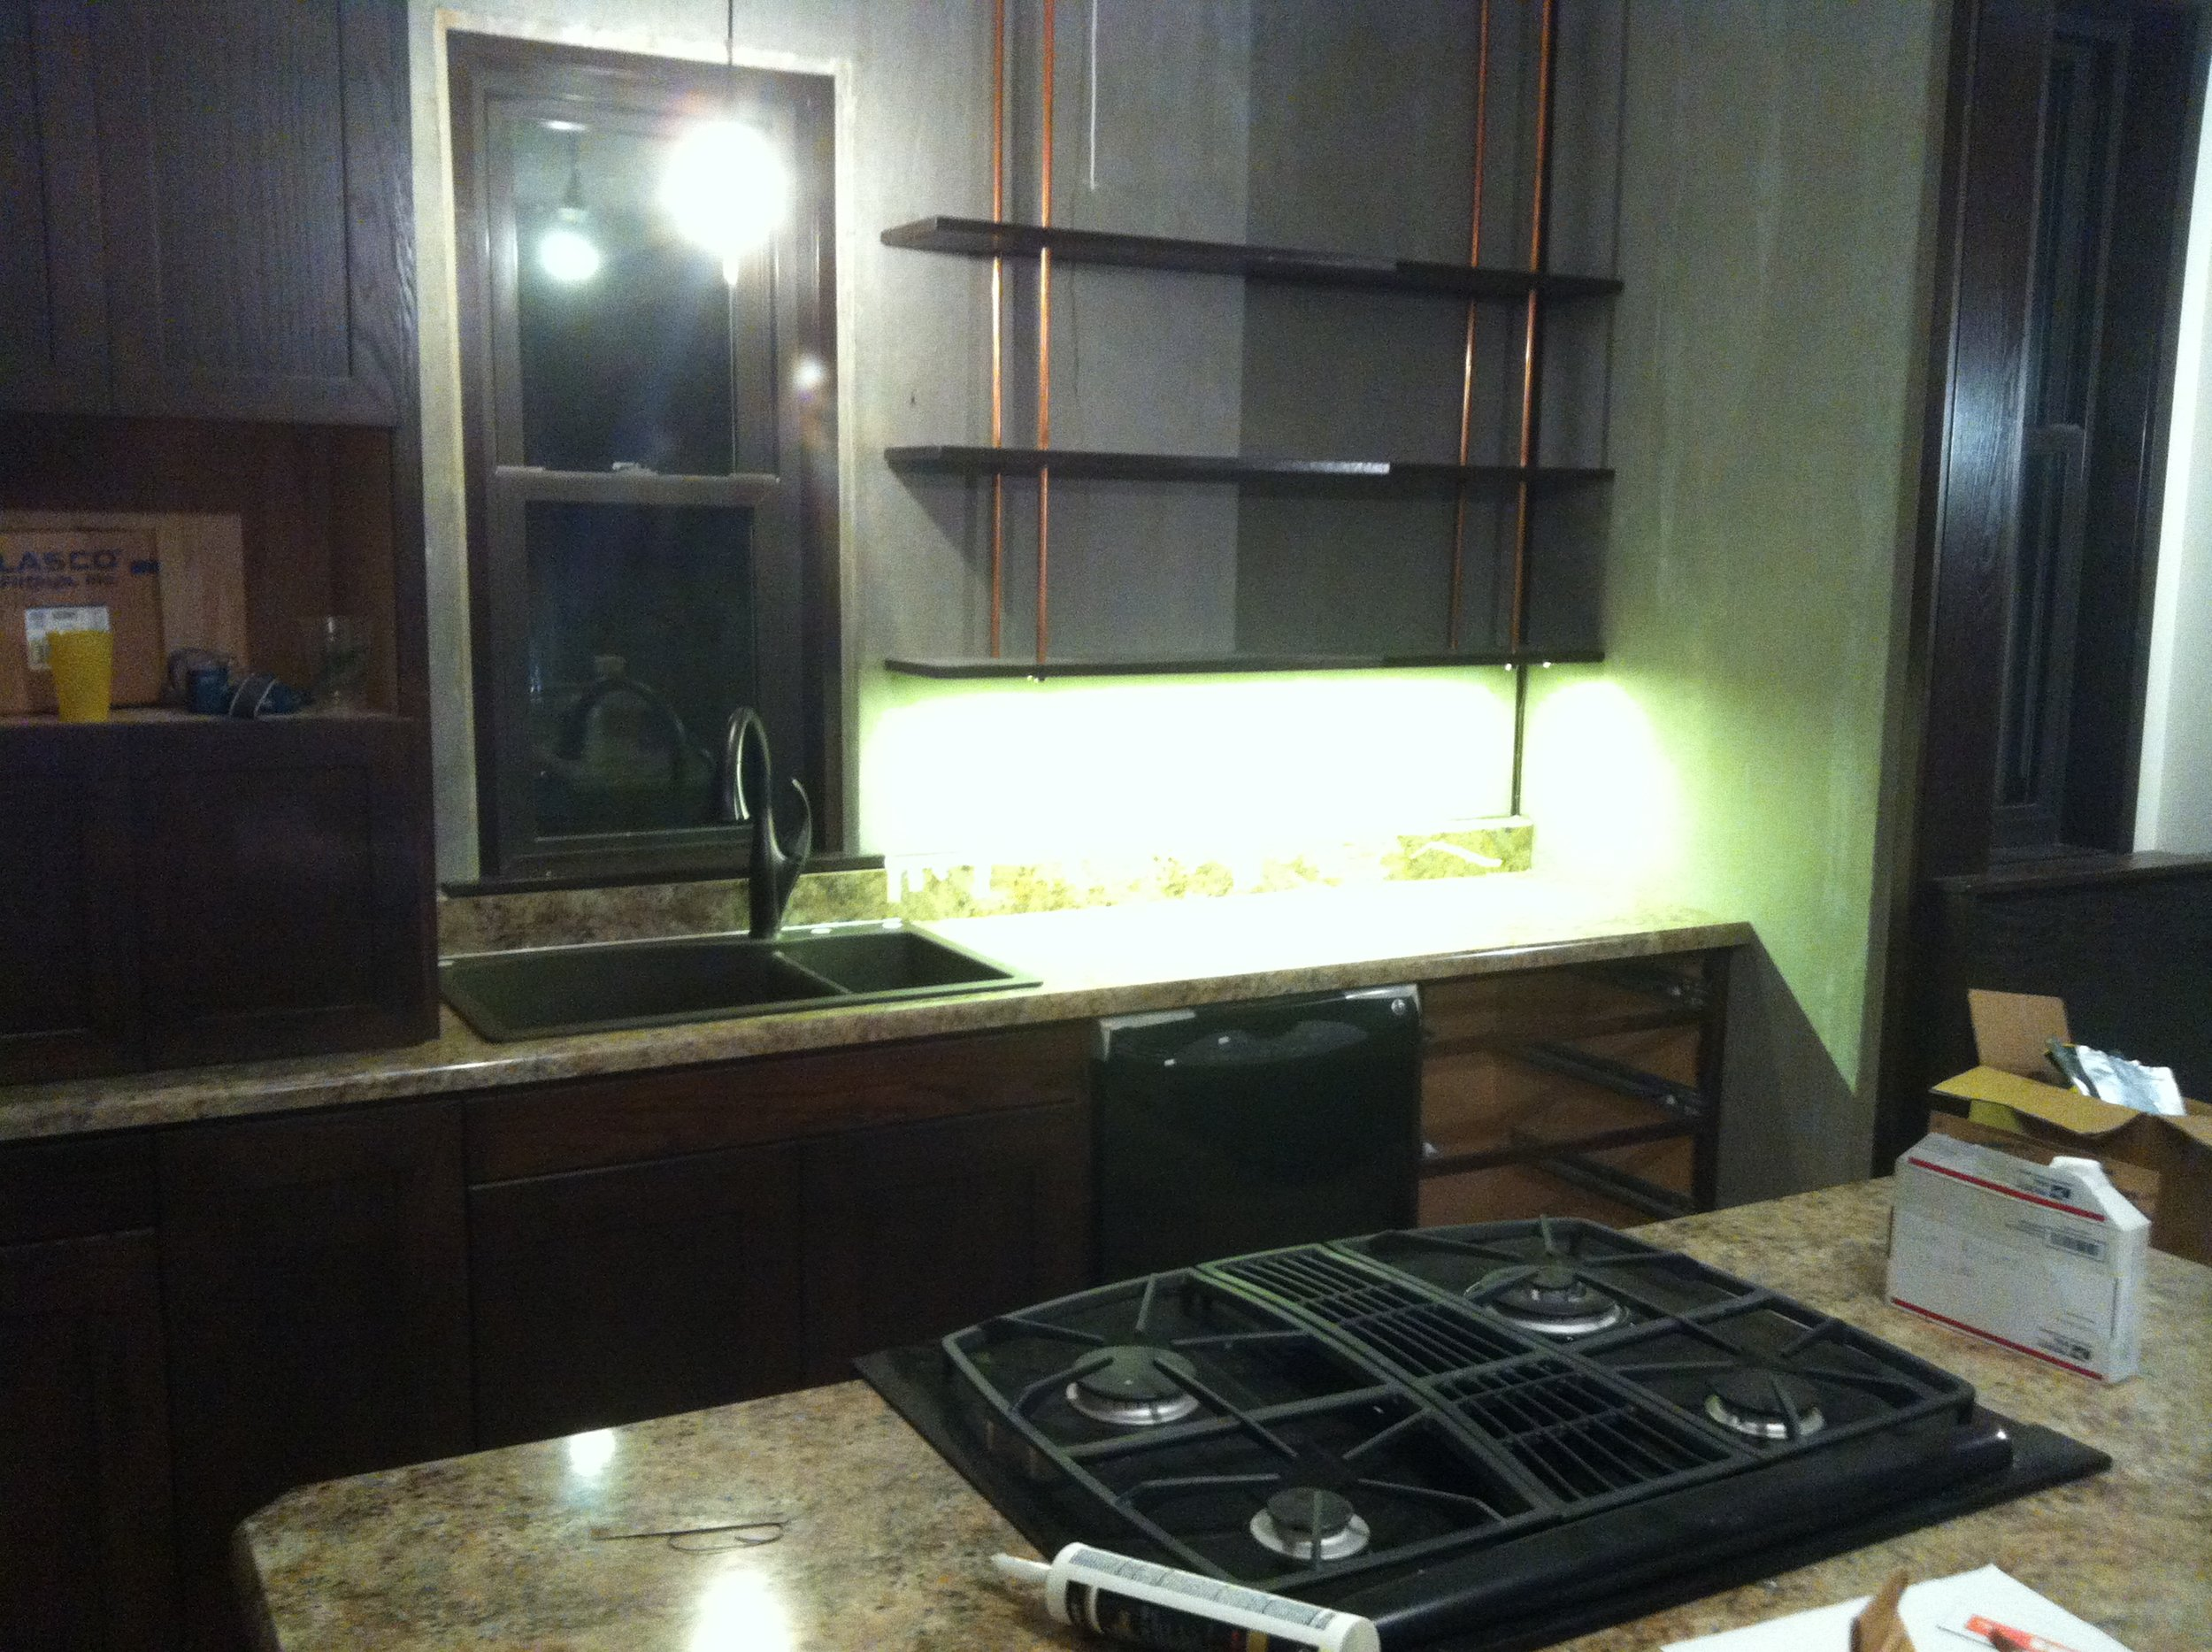 Kitchen Electrician Services